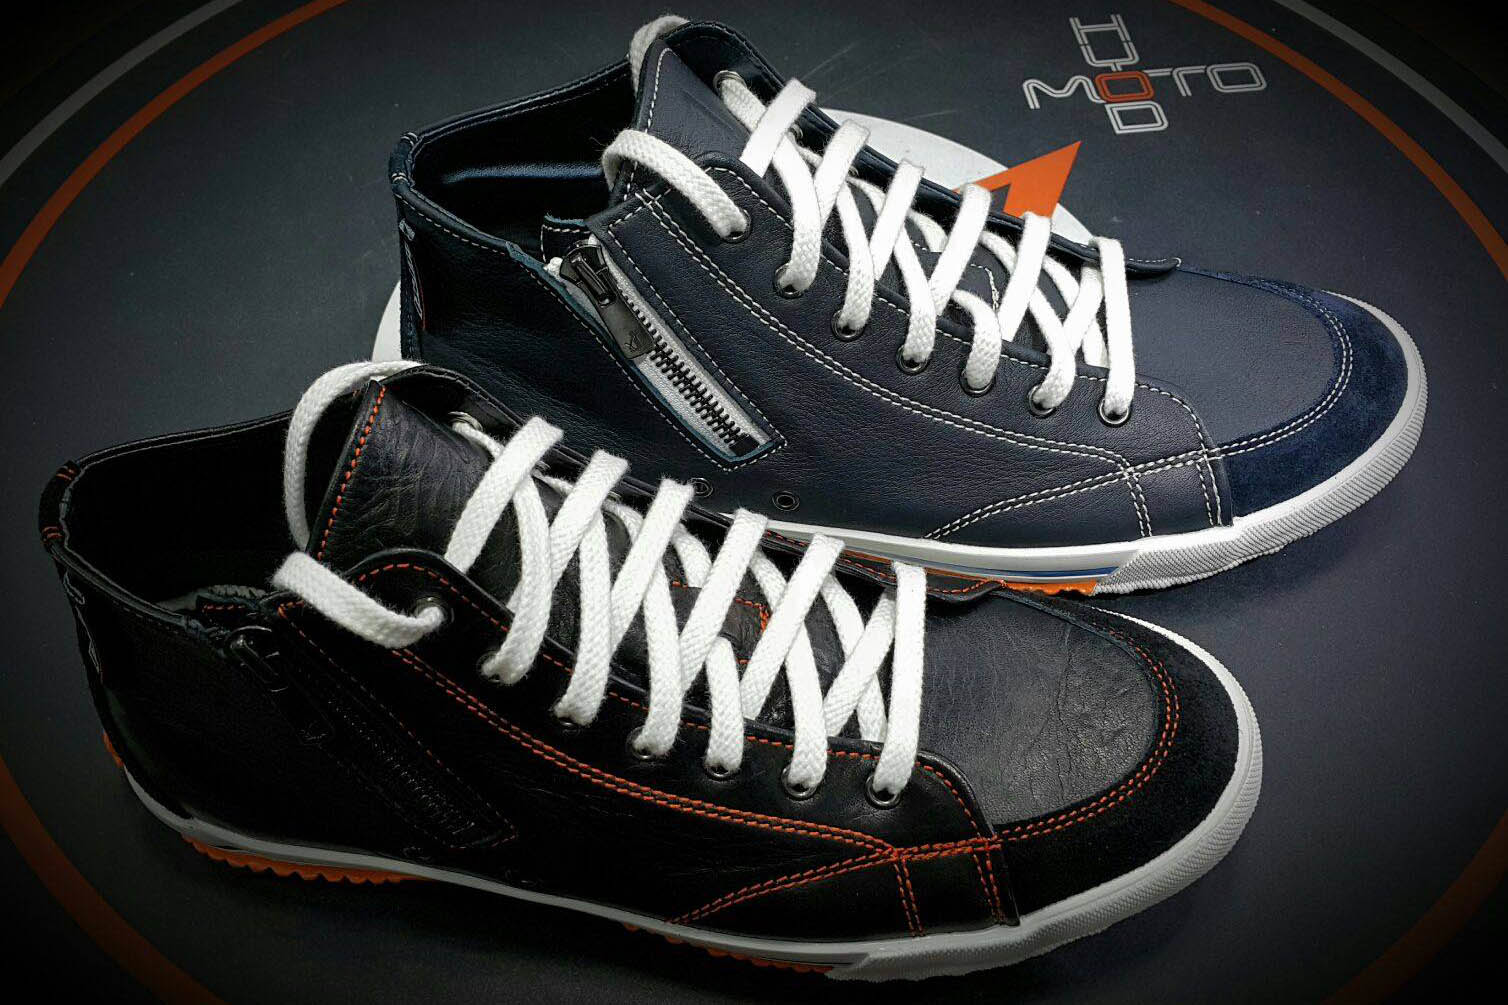 2018 HYOD RIDE SNEAKERS